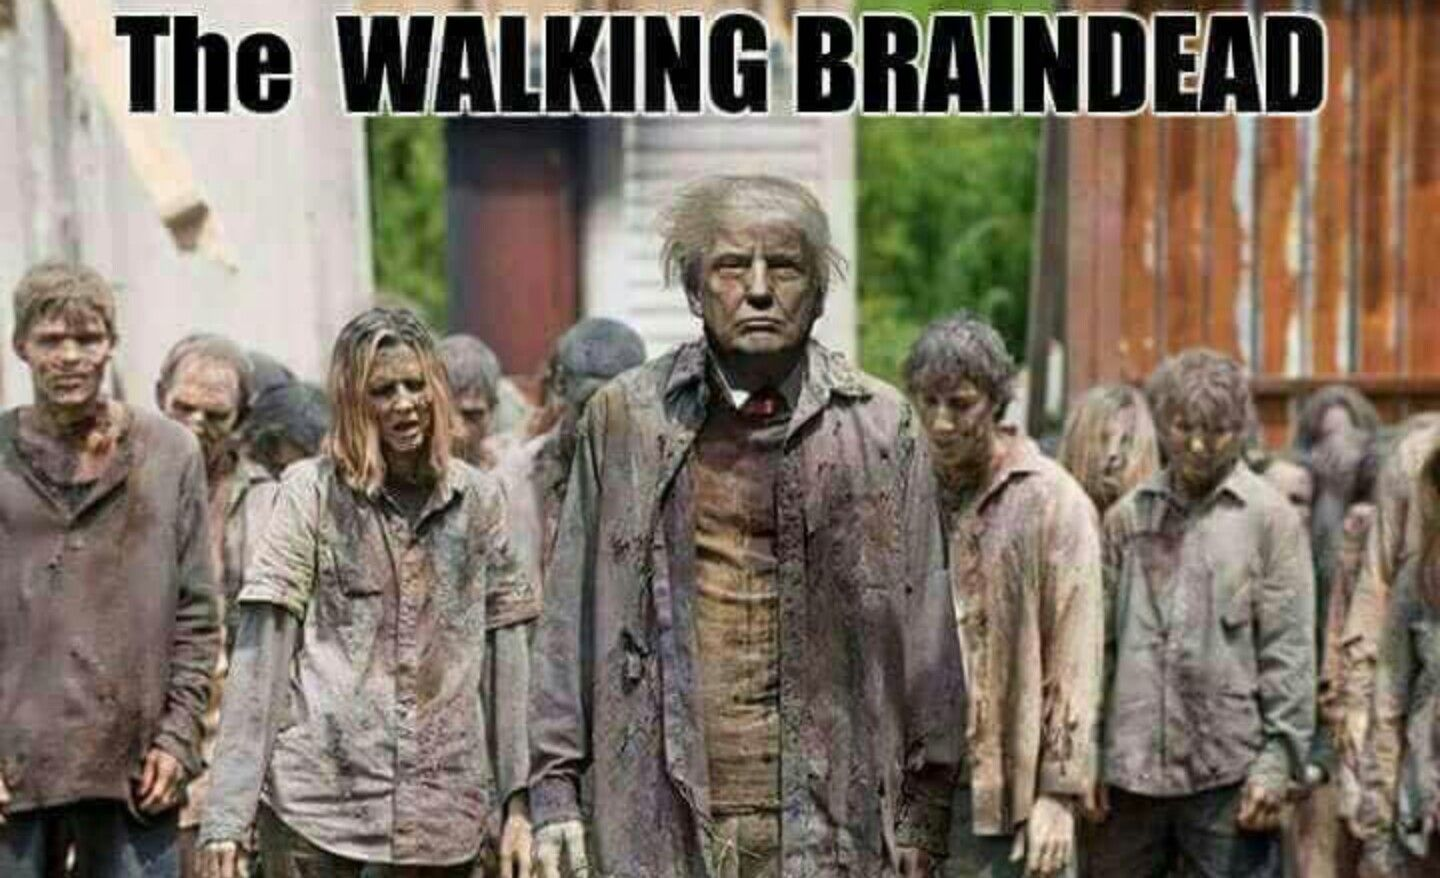 Trump And His Followers Zombie Apocalypse Survival The Walking